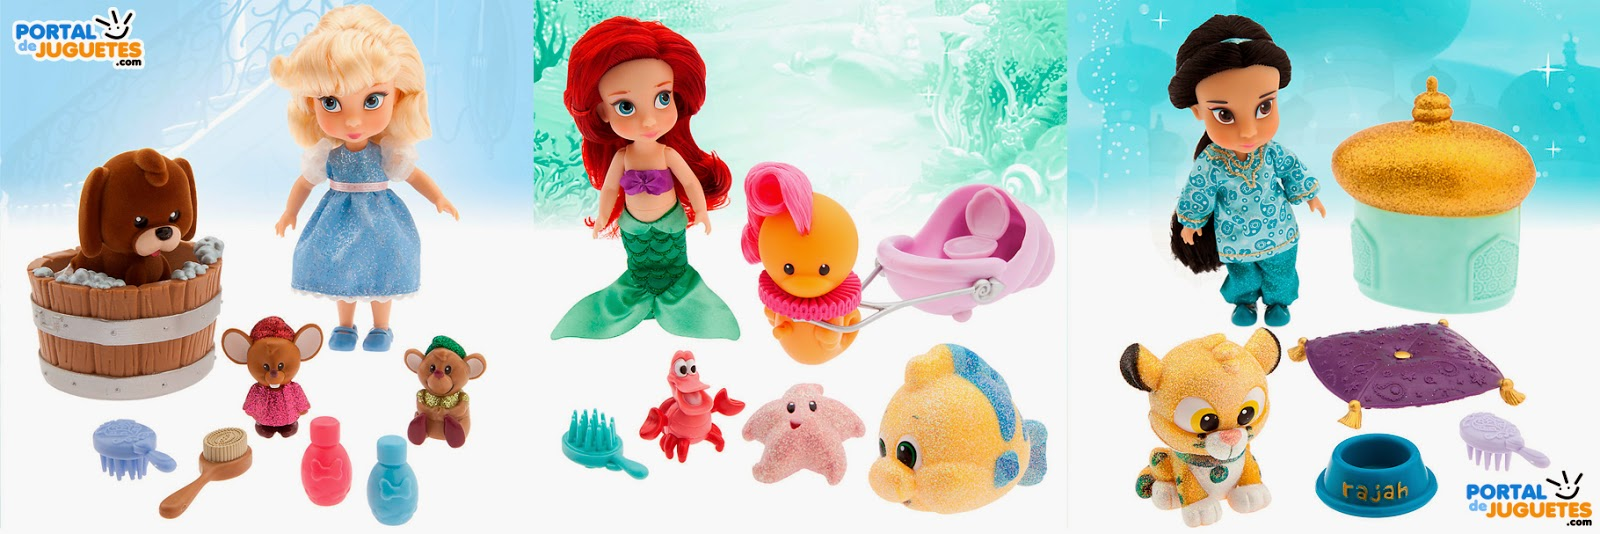 Minimuñecas Ariel Yasmin Cenicienta Coleccion Disney Animators